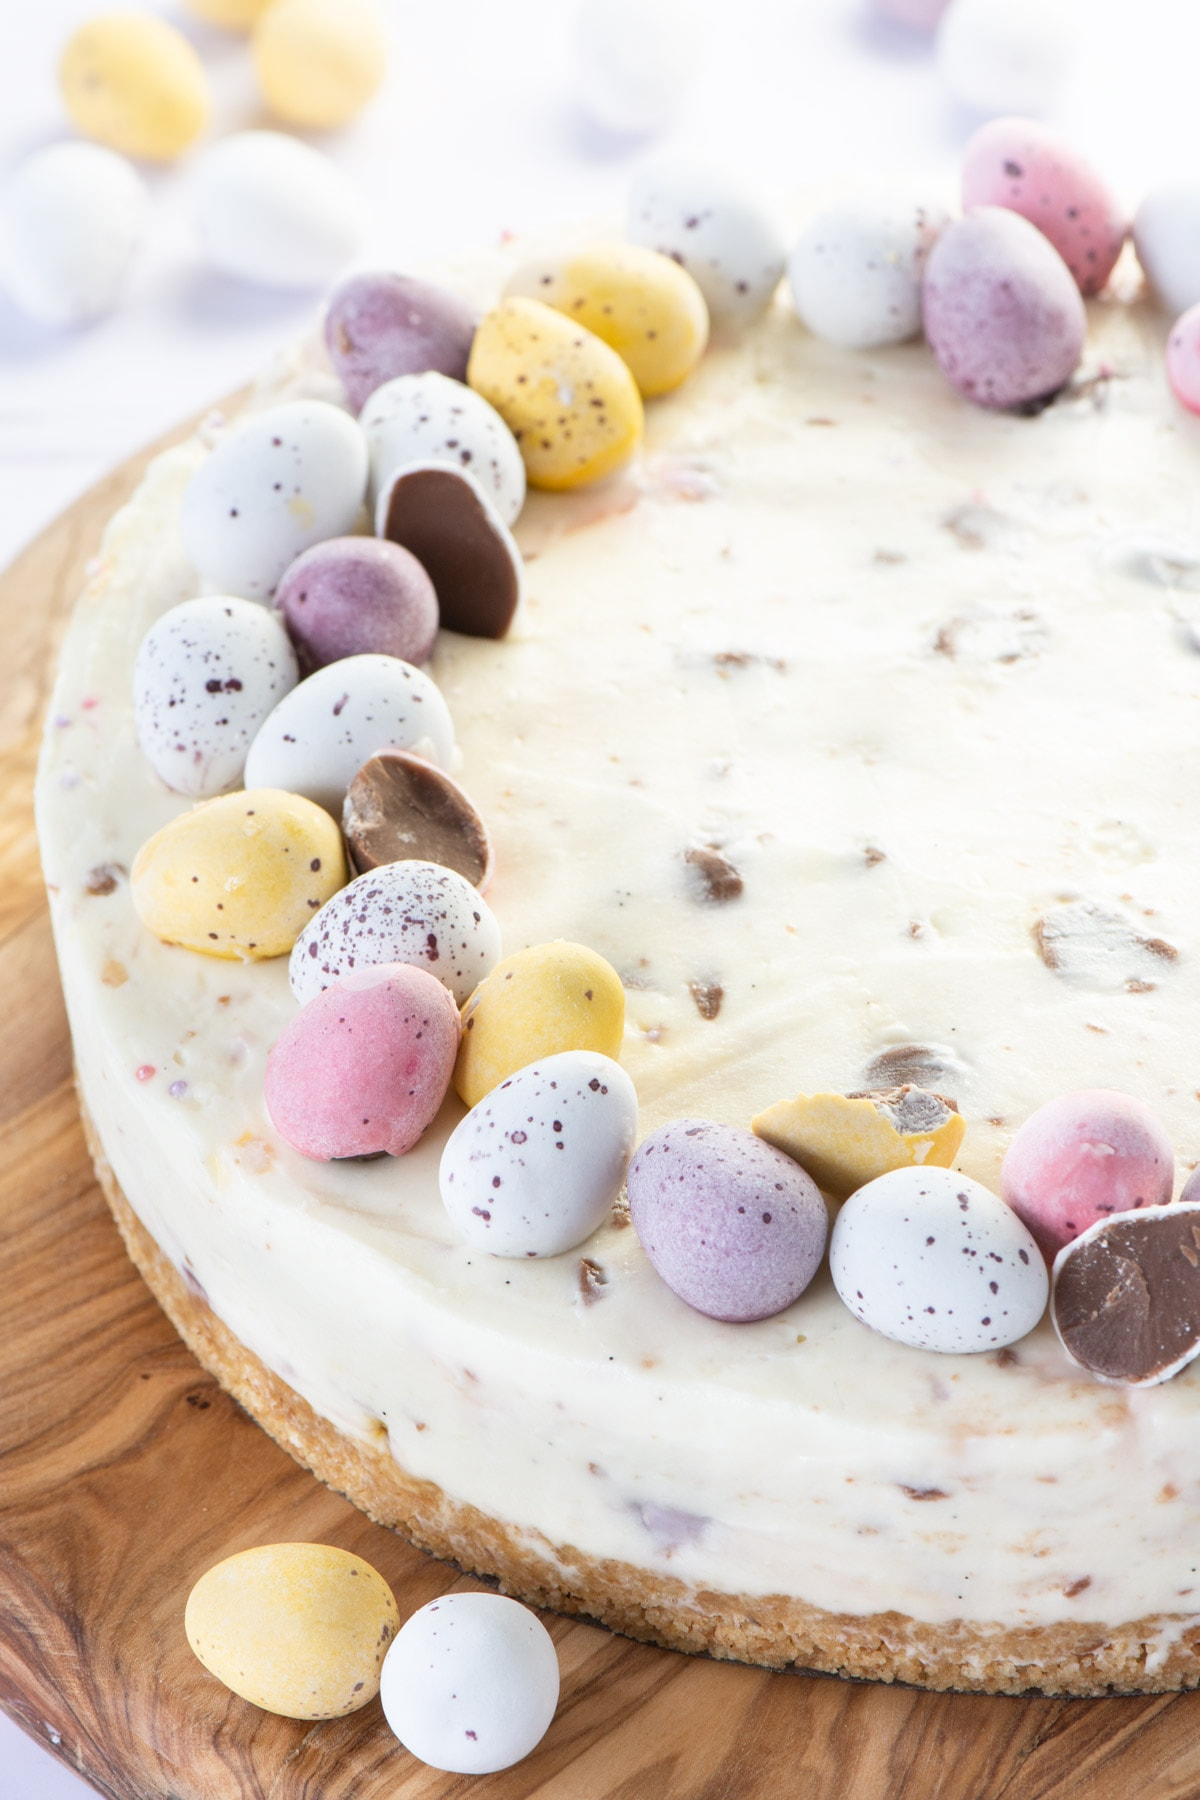 A white chocolate mini egg cheesecake topped with mini eggs. The eggs are arranged around the edge of the cheesecake. Some are broken to show the chocolate in the centre.